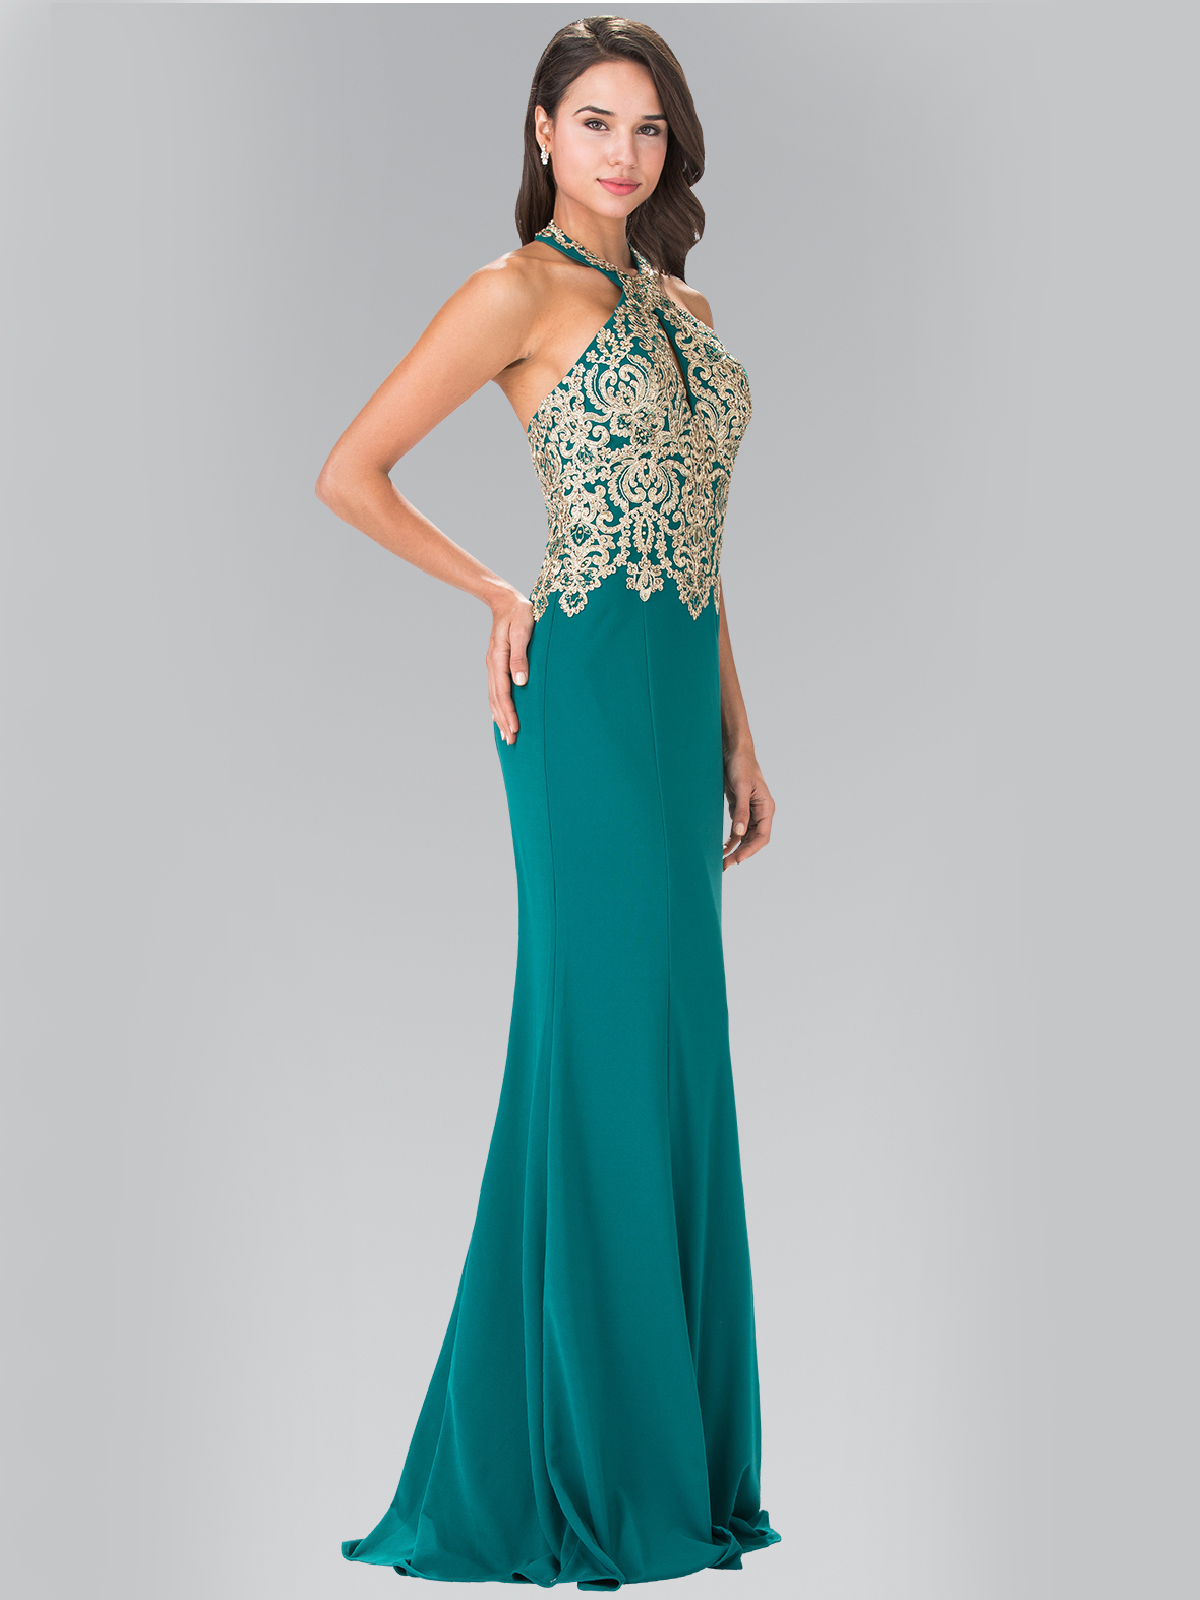 Halter Embroidered Long Prom Dress | Sung Boutique L.A.